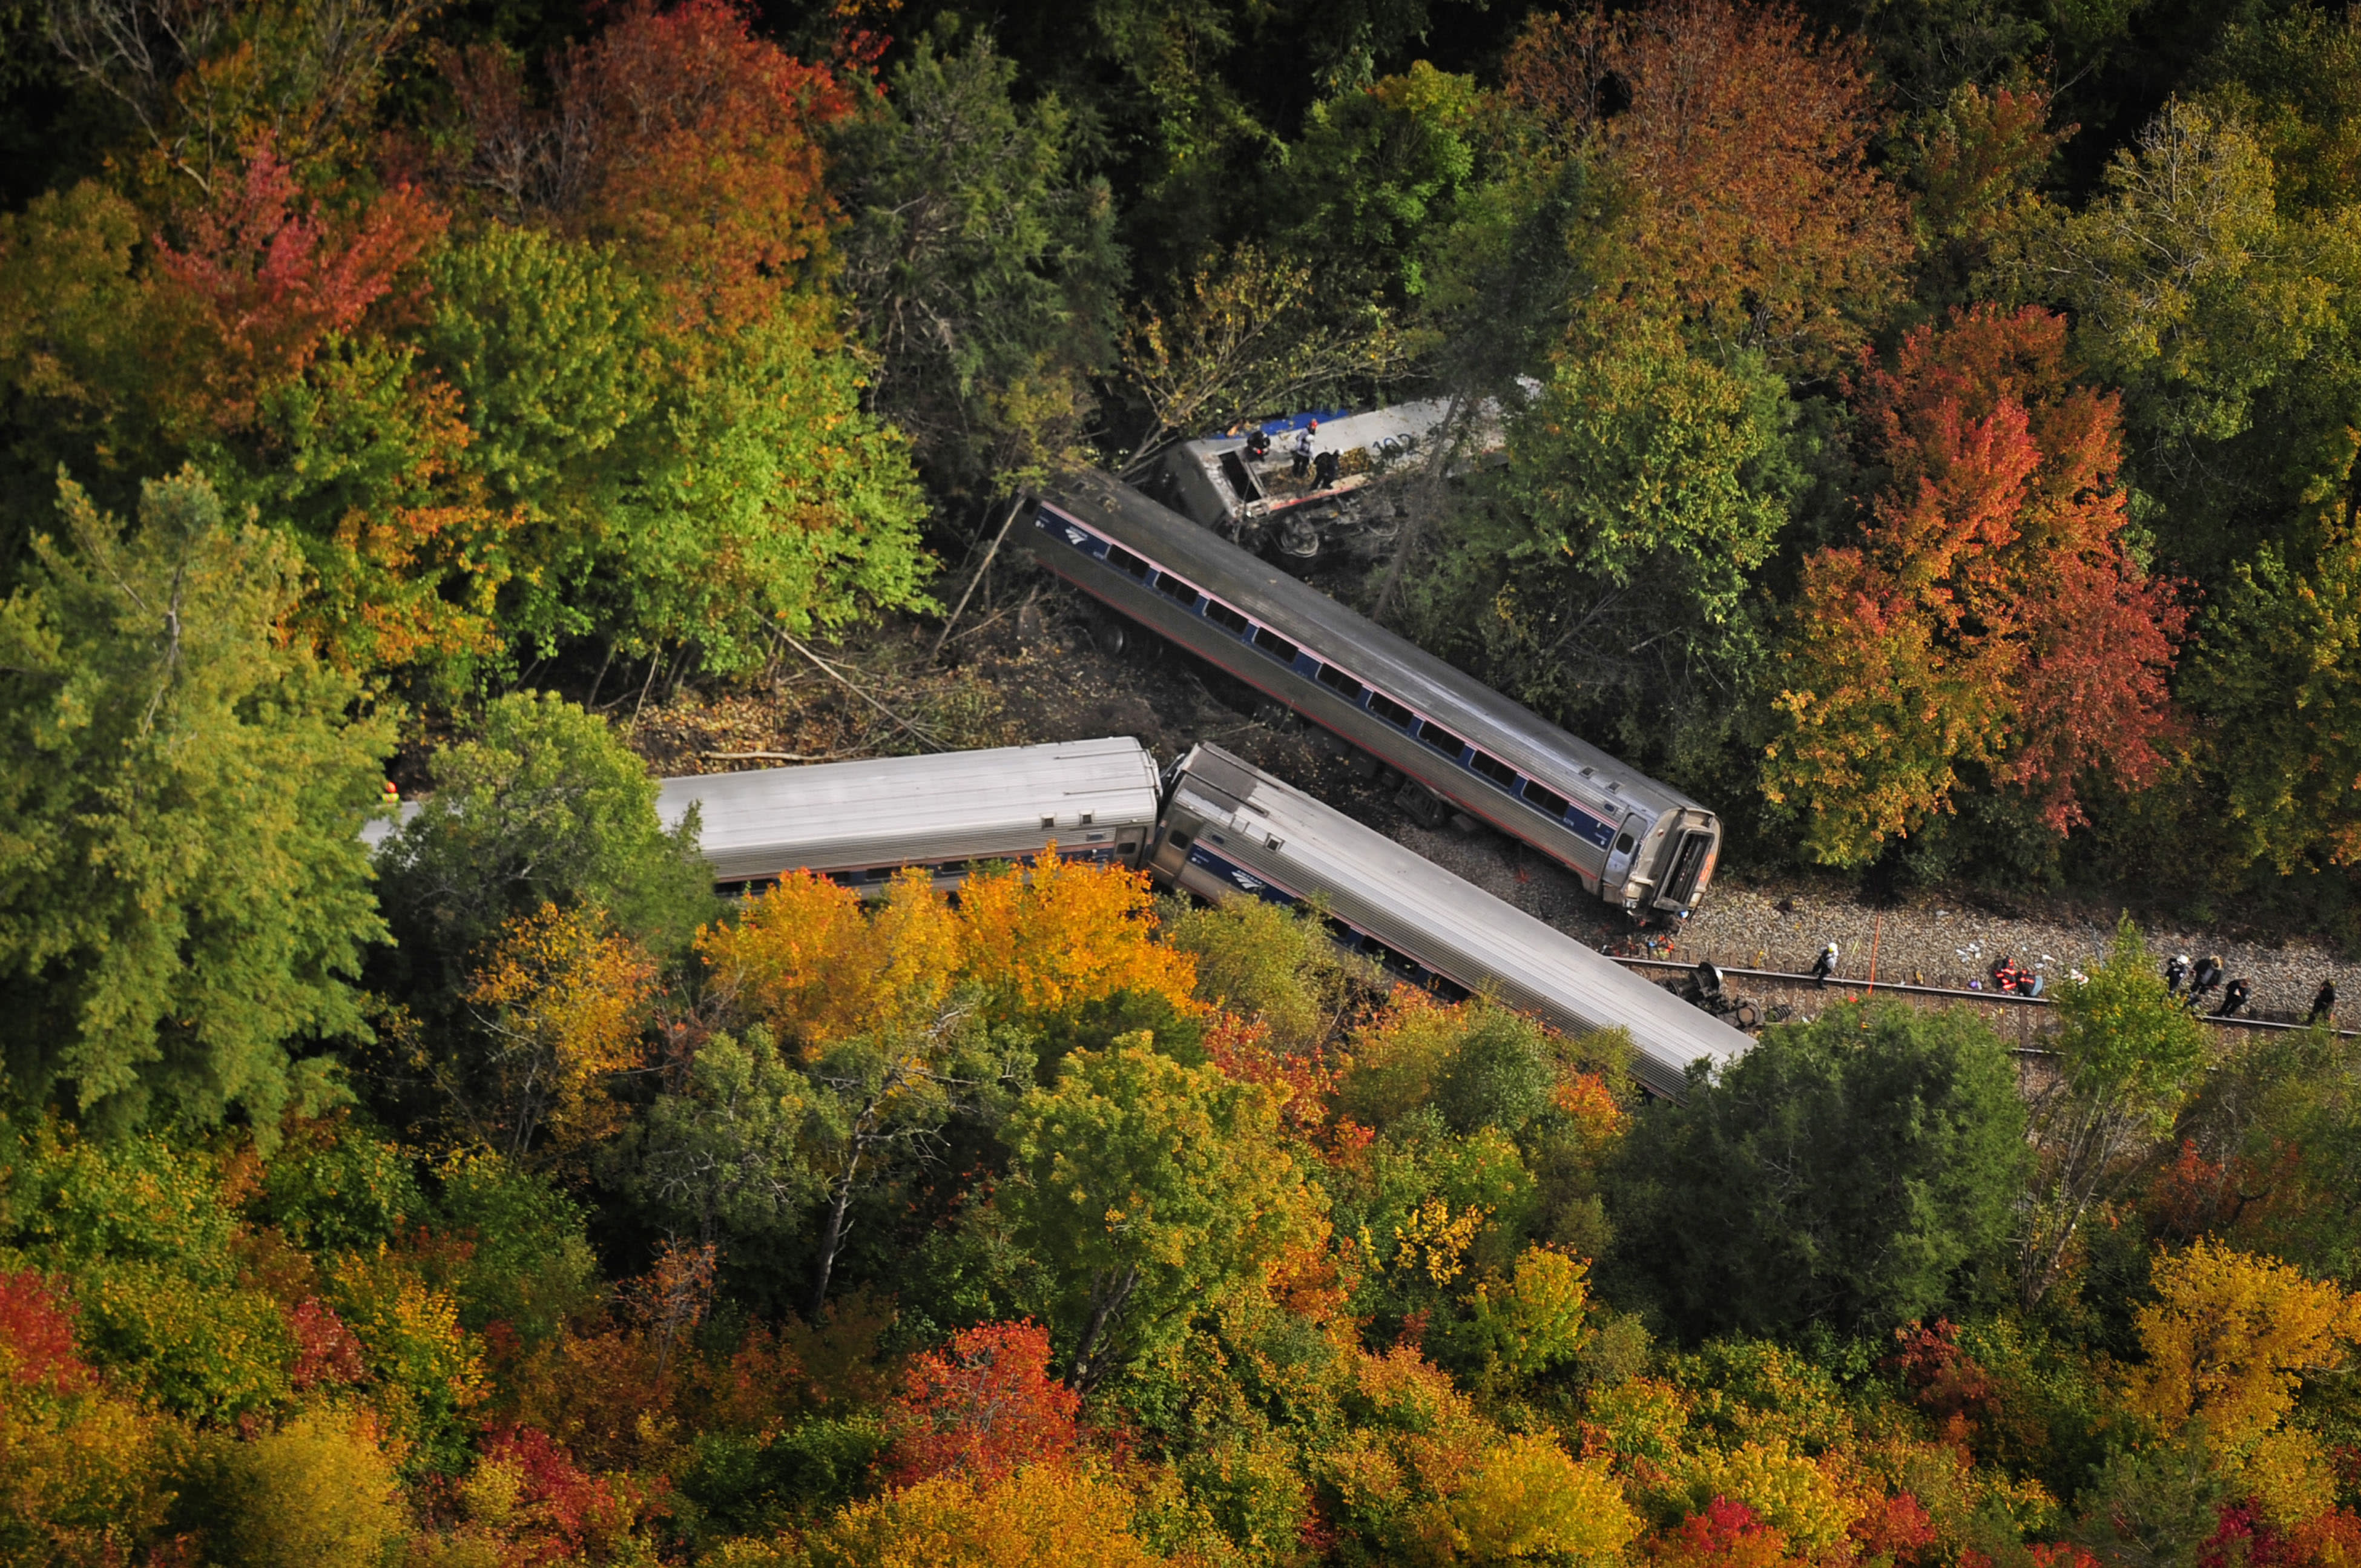 Rock fences that may prevent derailment not used in Vermont